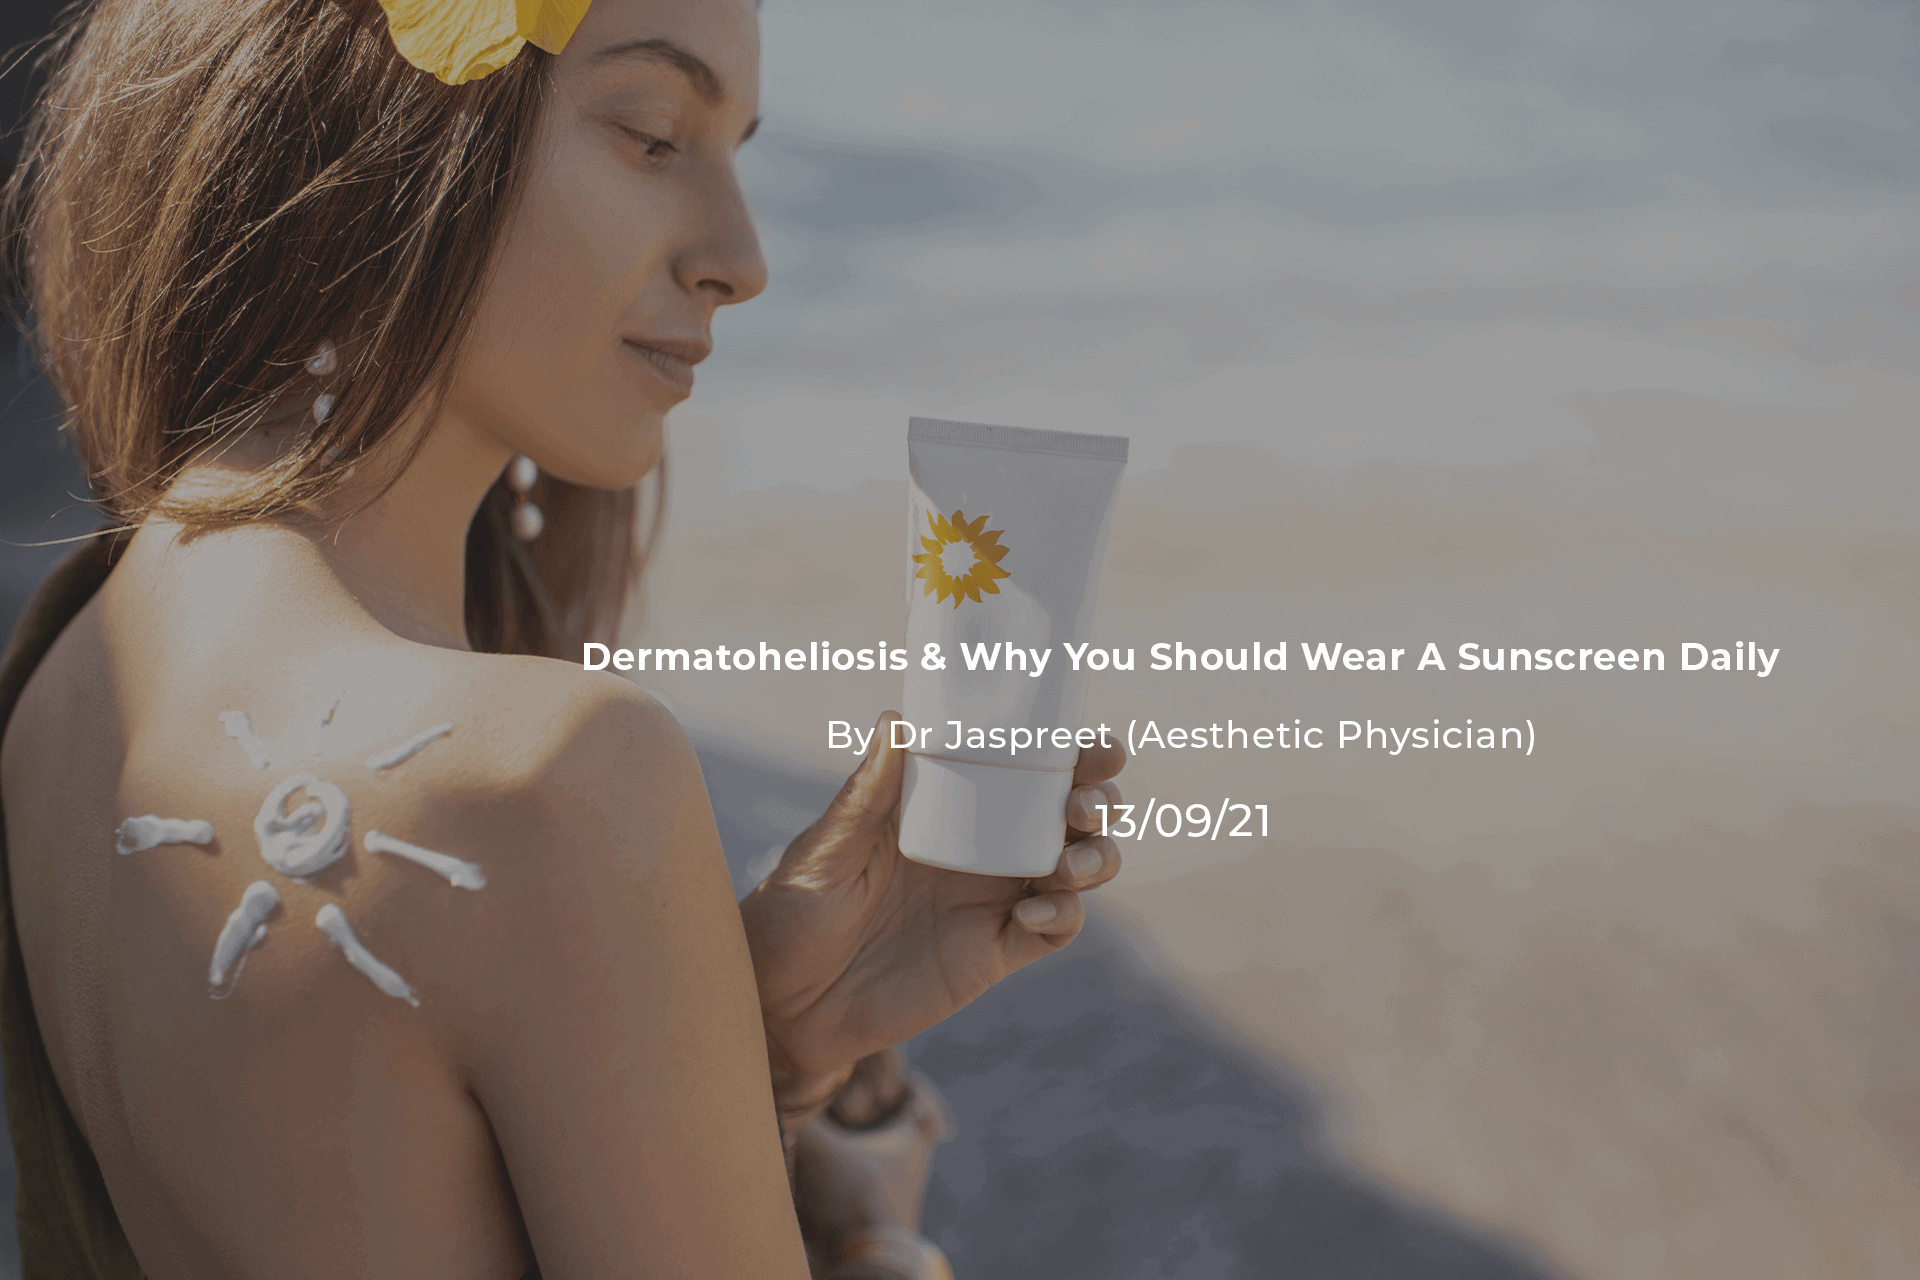 Dermatoheliosis & Why You Should Wear A Sunscreen Daily